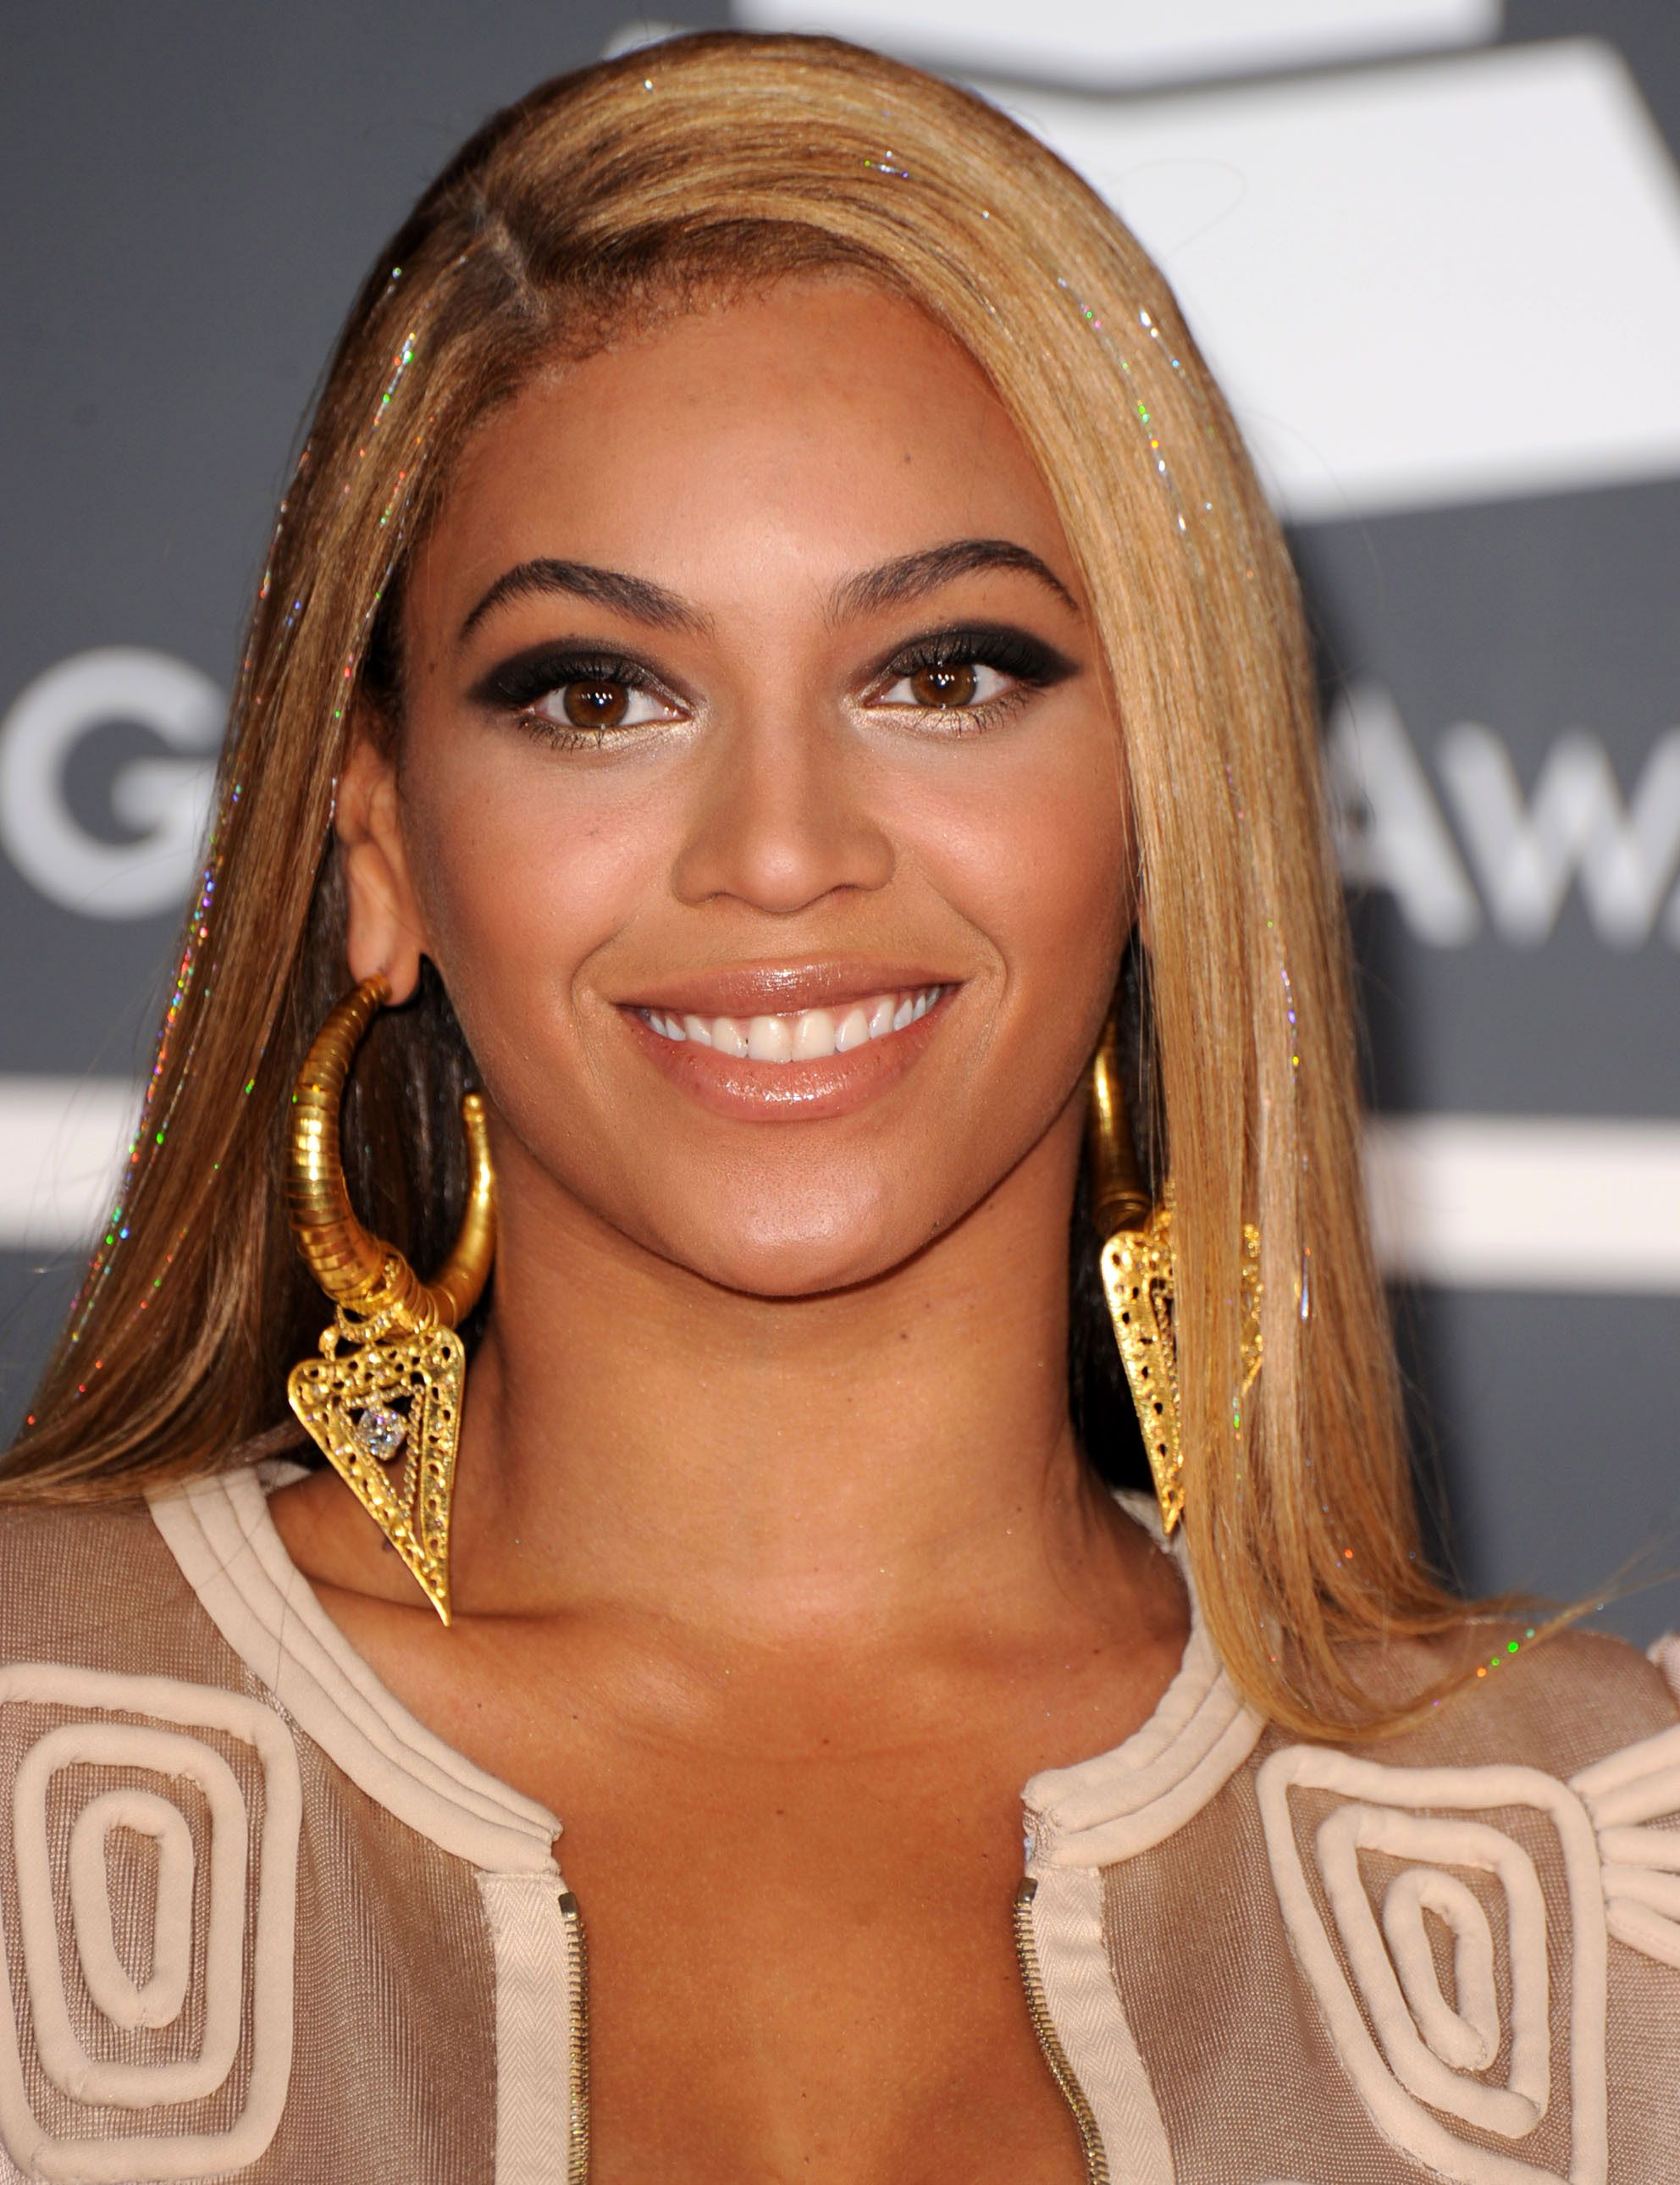 Beyonce 2000's | Makeup | 2000s hairstyles, Beauty trends ...